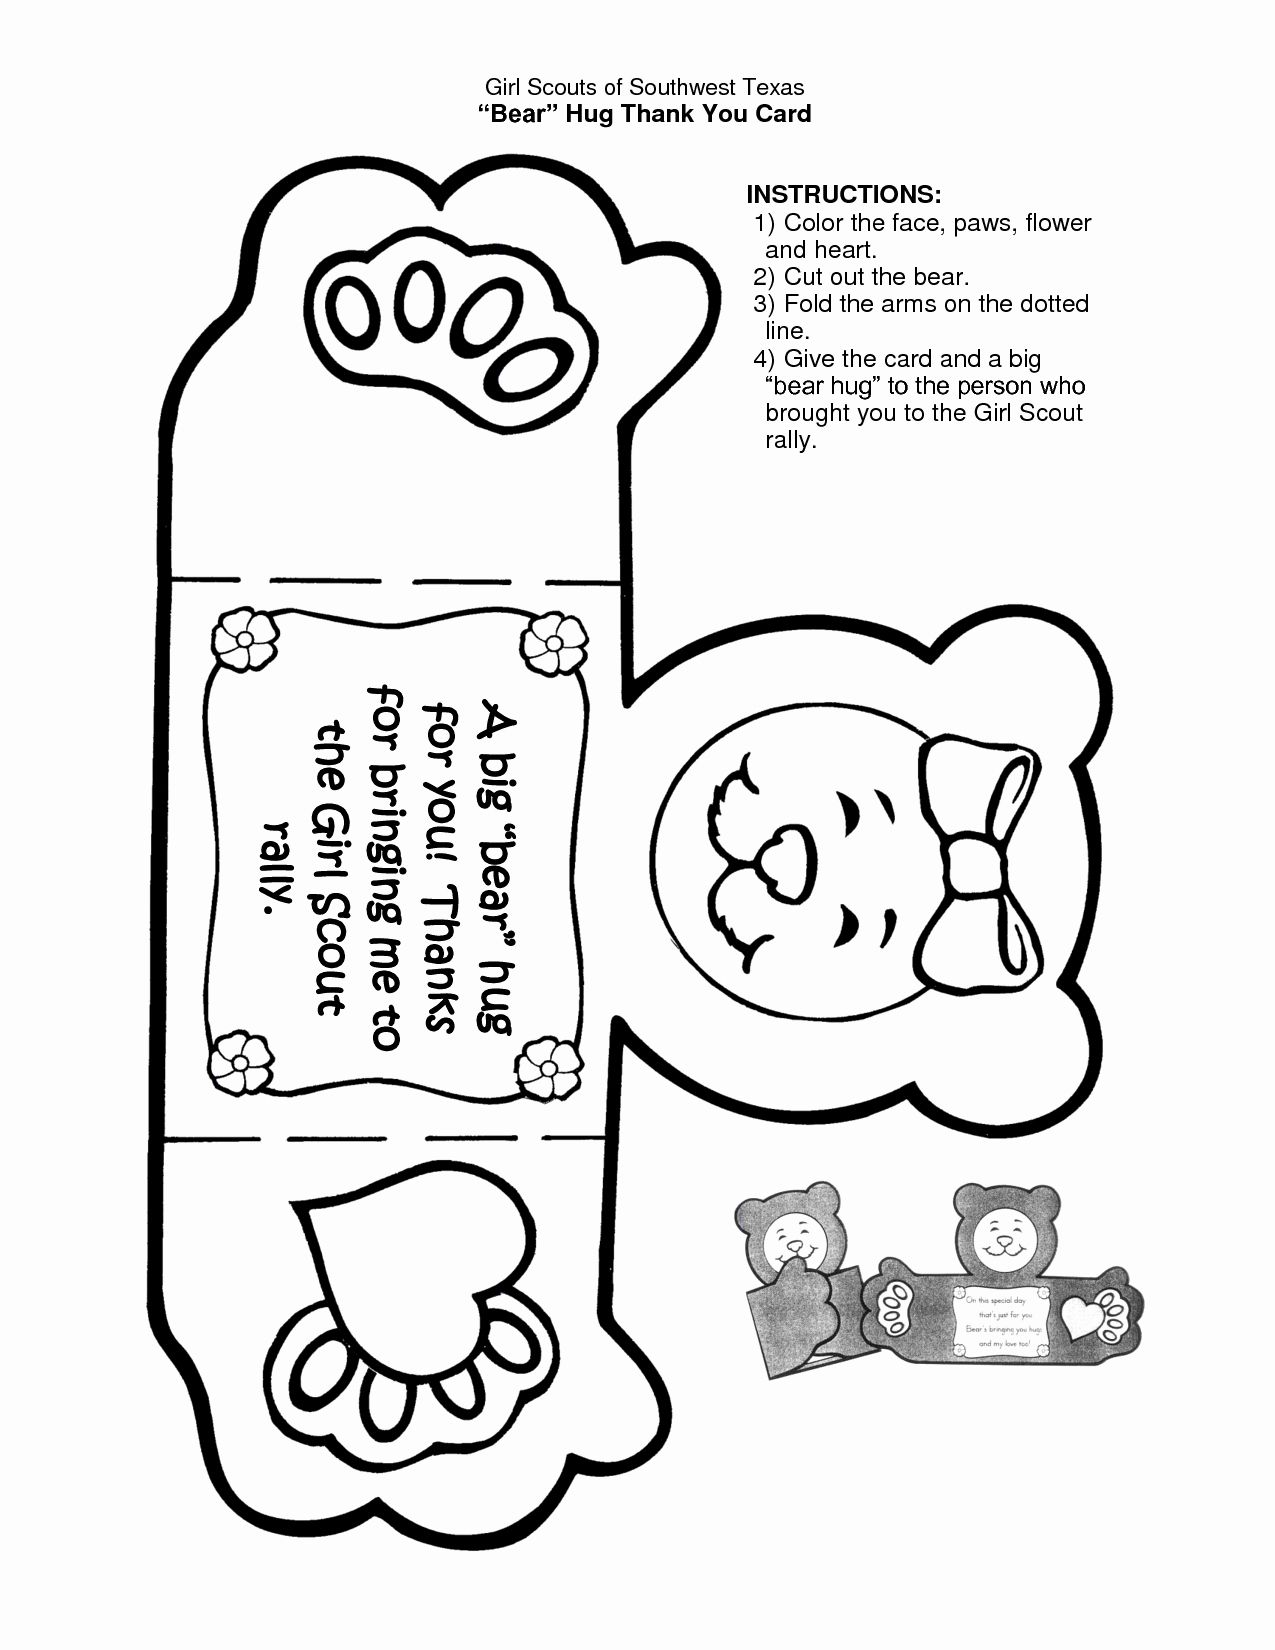 Heart Thank You Coloring Pages For Kids Thank You Card Template Printable Thank You Cards Thank You Cards